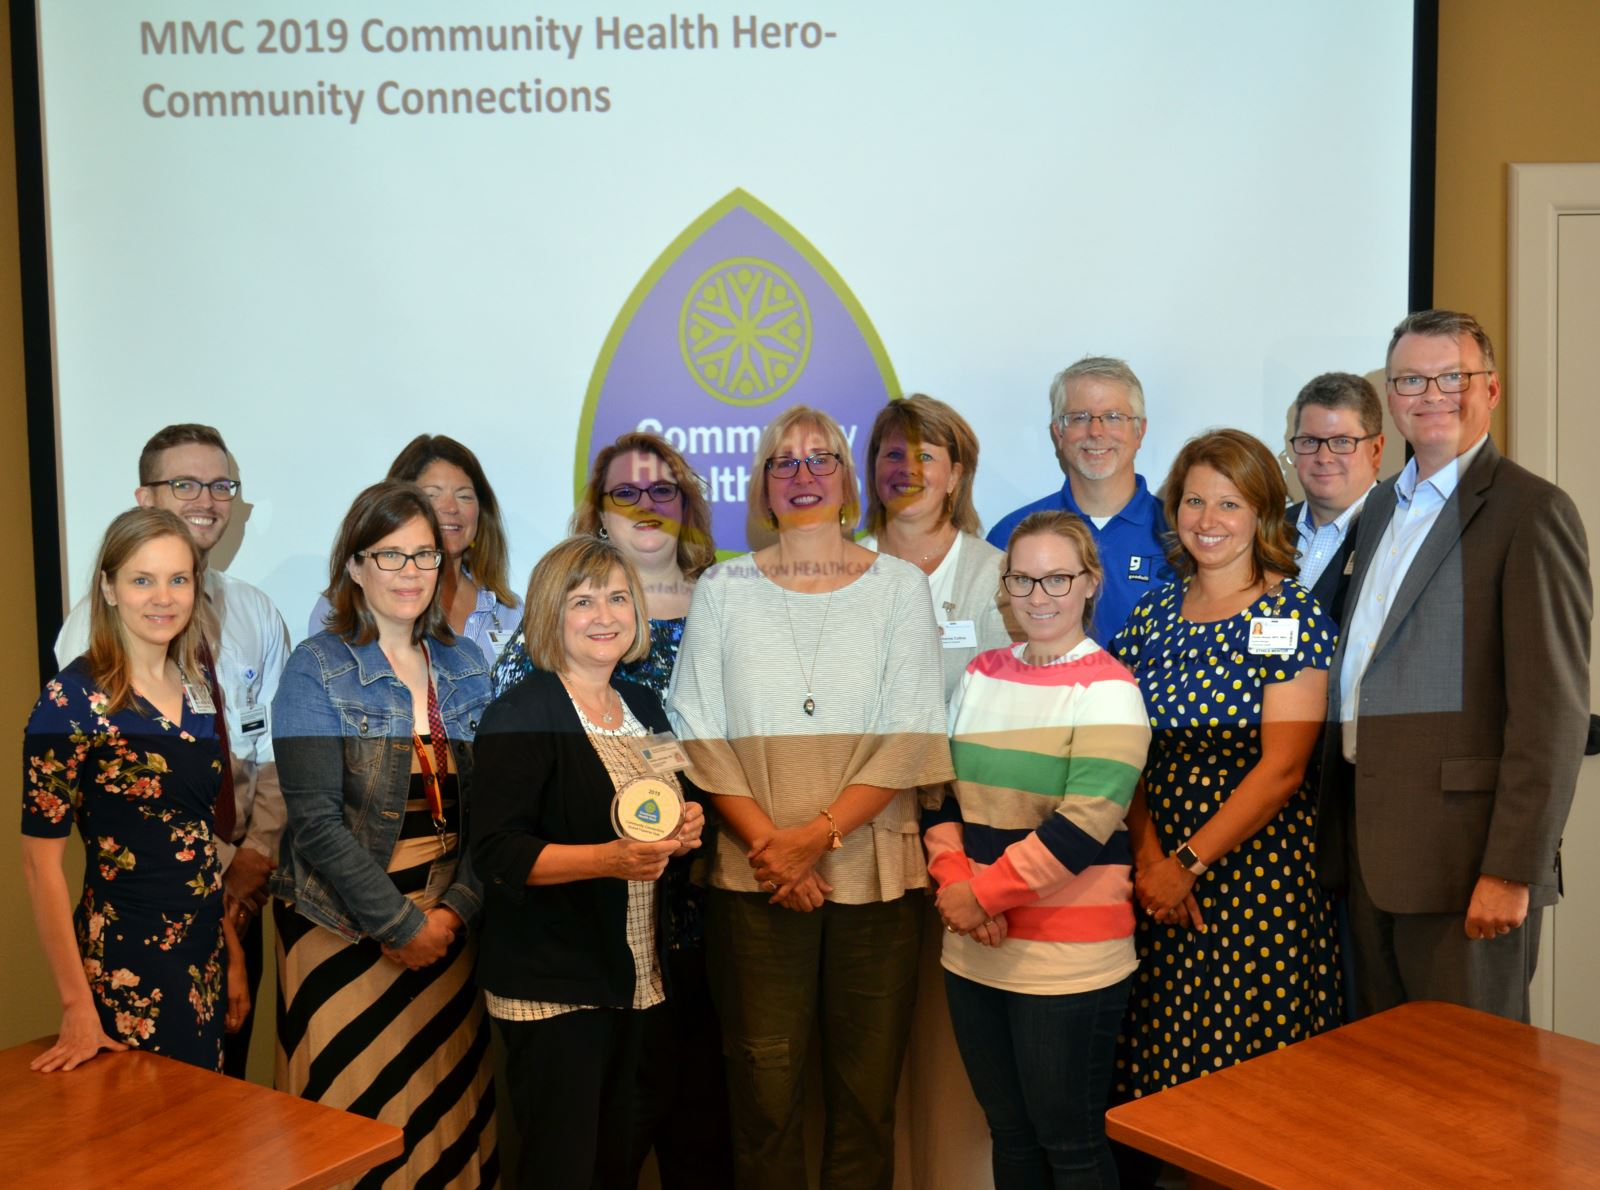 Grand Traverse Hub Community Health Heroes - MMC